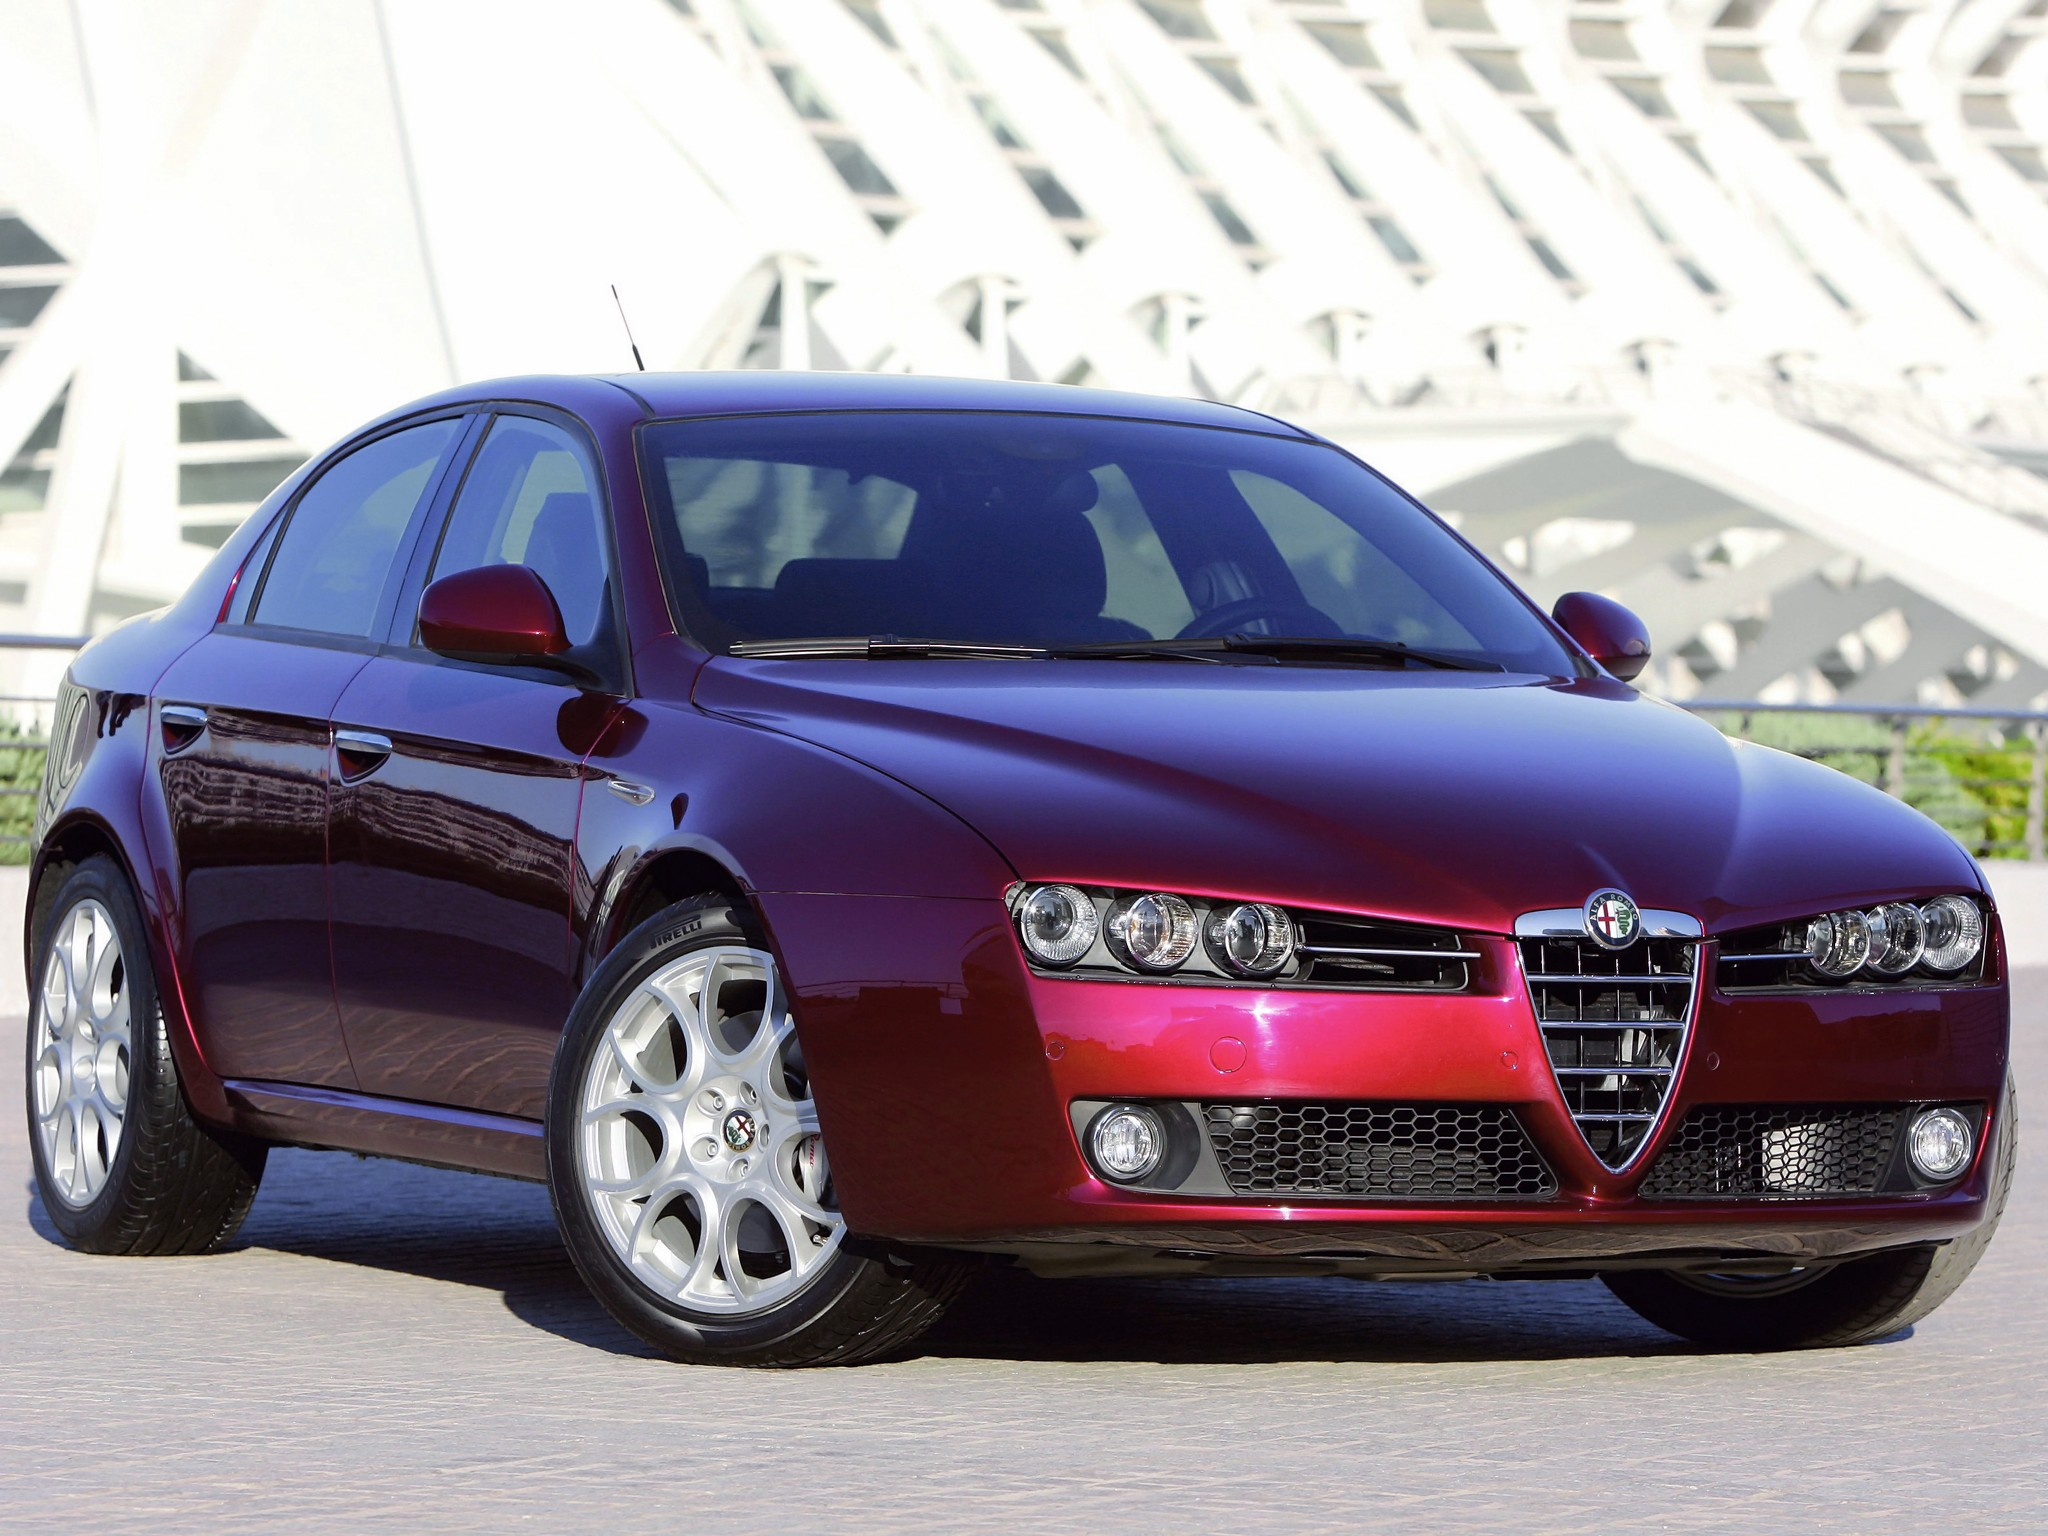 alfa romeo 159 specs 2005 2006 2007 2008 2009 2010. Black Bedroom Furniture Sets. Home Design Ideas